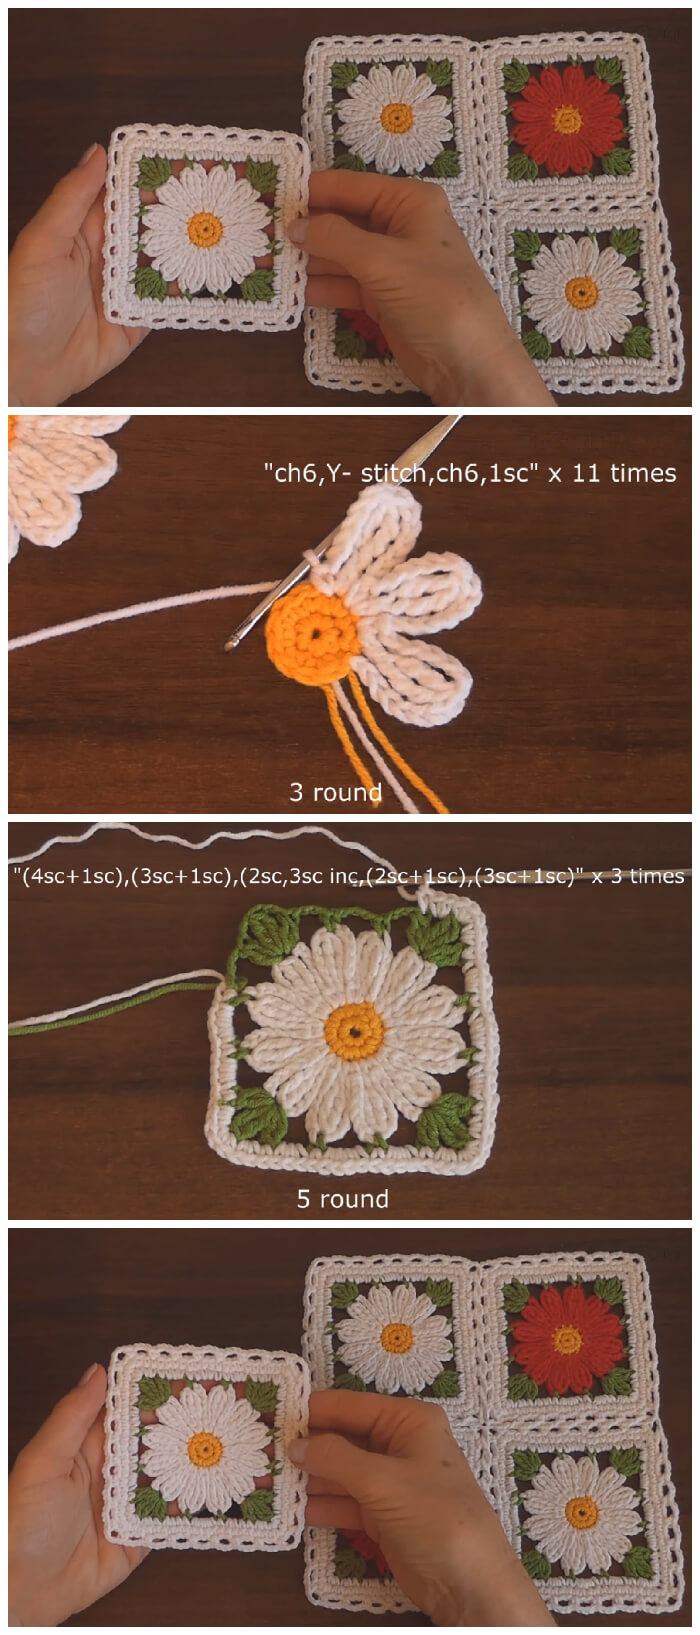 You can use this Easy Crochet Flower Motif as colourful coasters to decorate your table, (they would look amazing outside for all seasons dining).